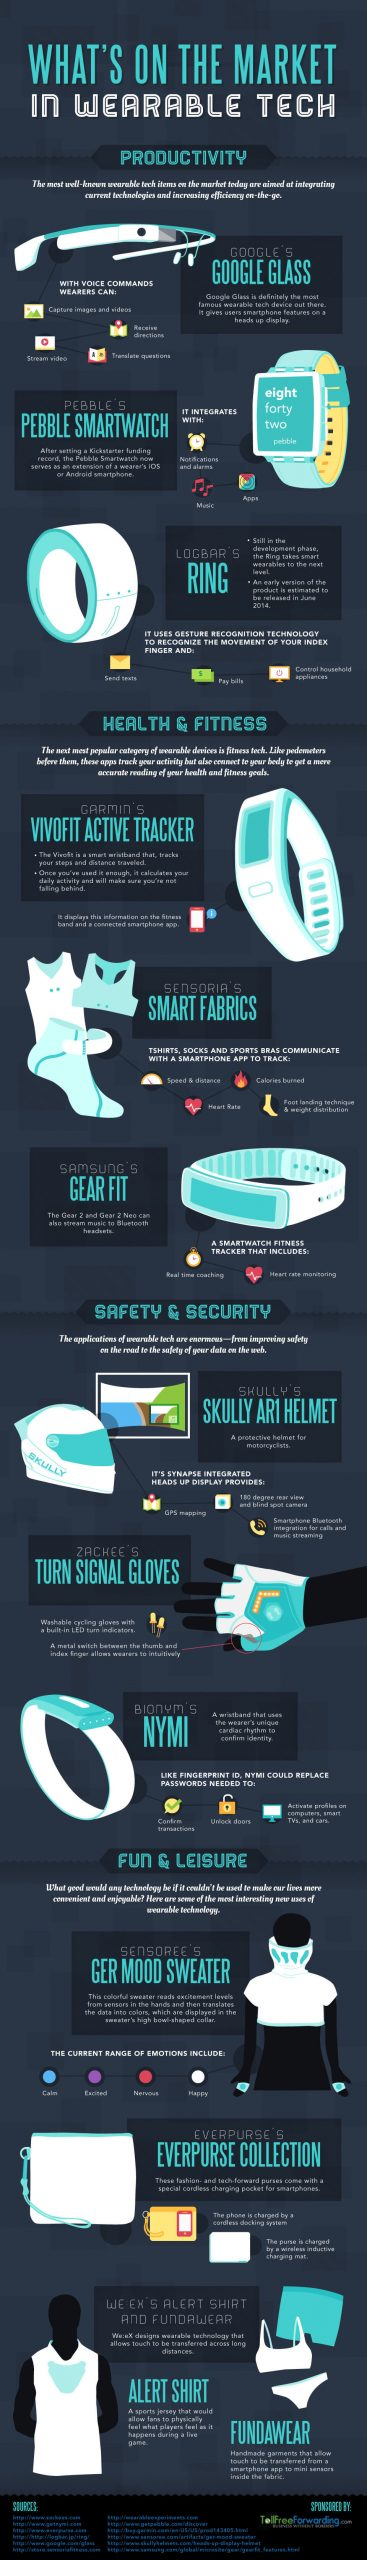 What is on the Market in Wearable Tech